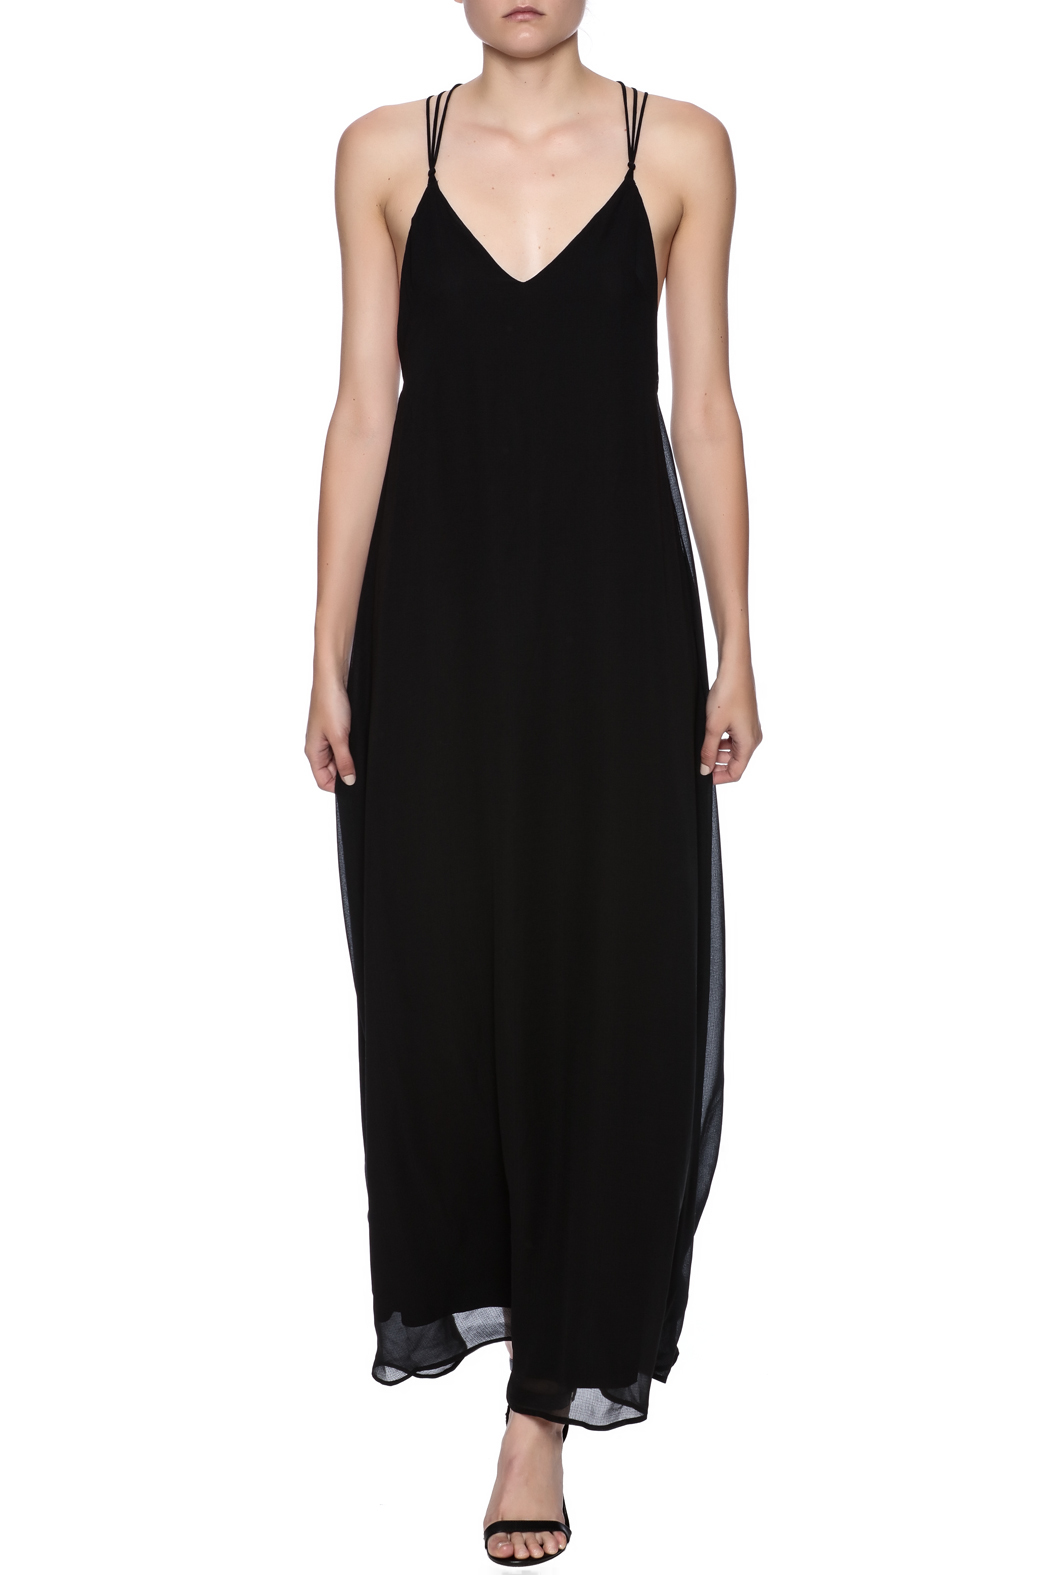 fashion on earth Black String Back Maxi - Main Image